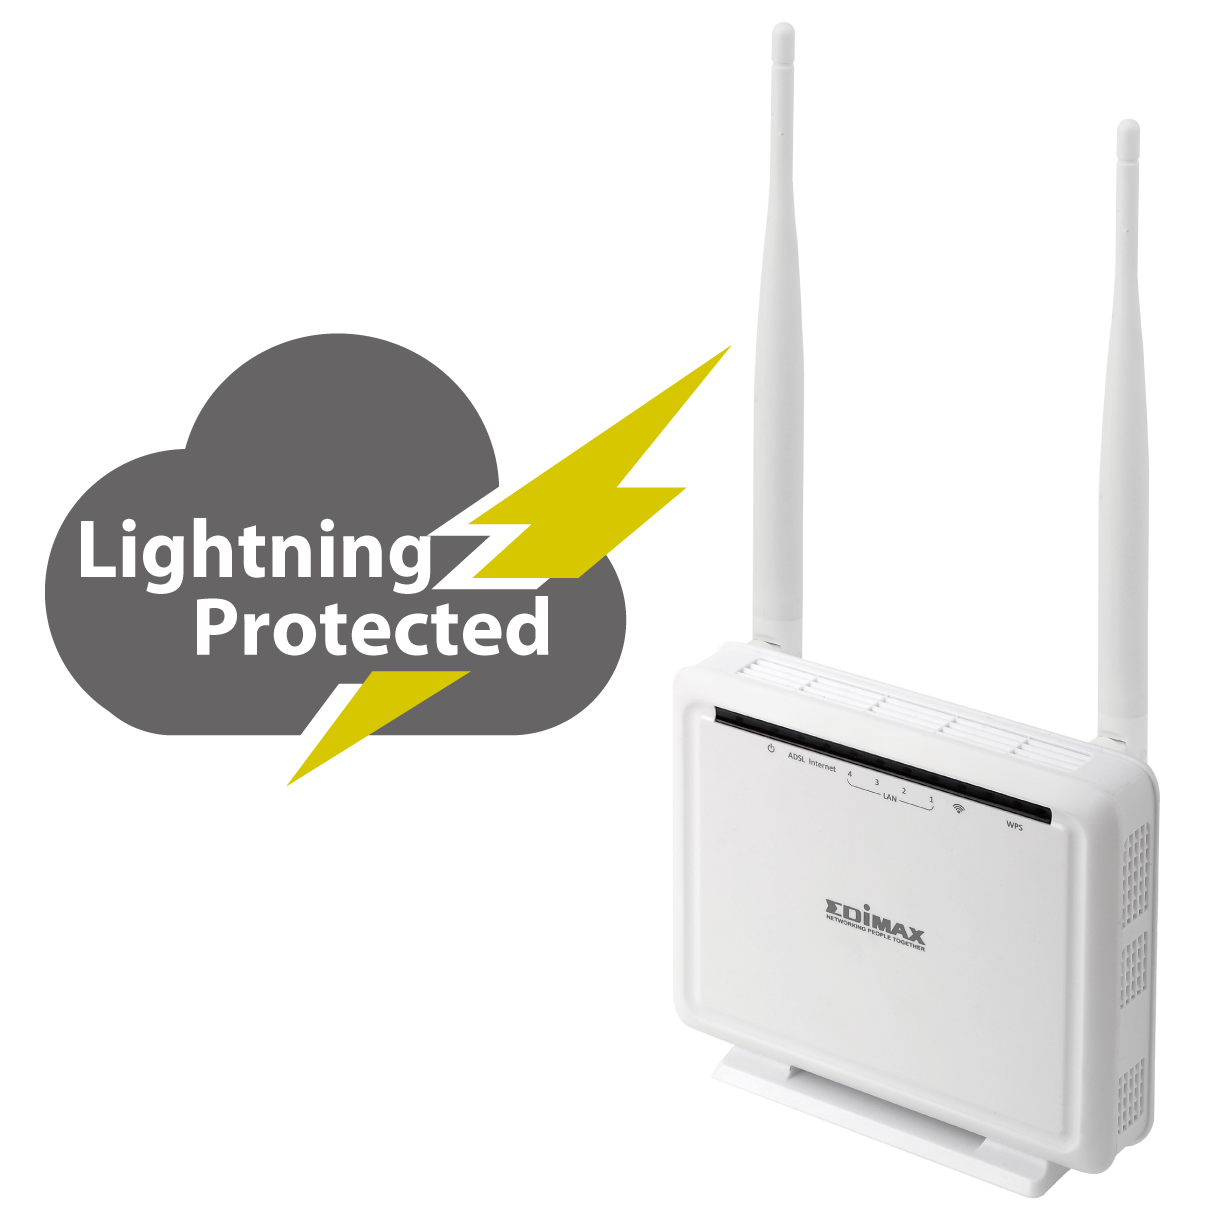 Edimax N300 Wireless ADSL Modem Router AR-7286WnAB_lightning_protected.png